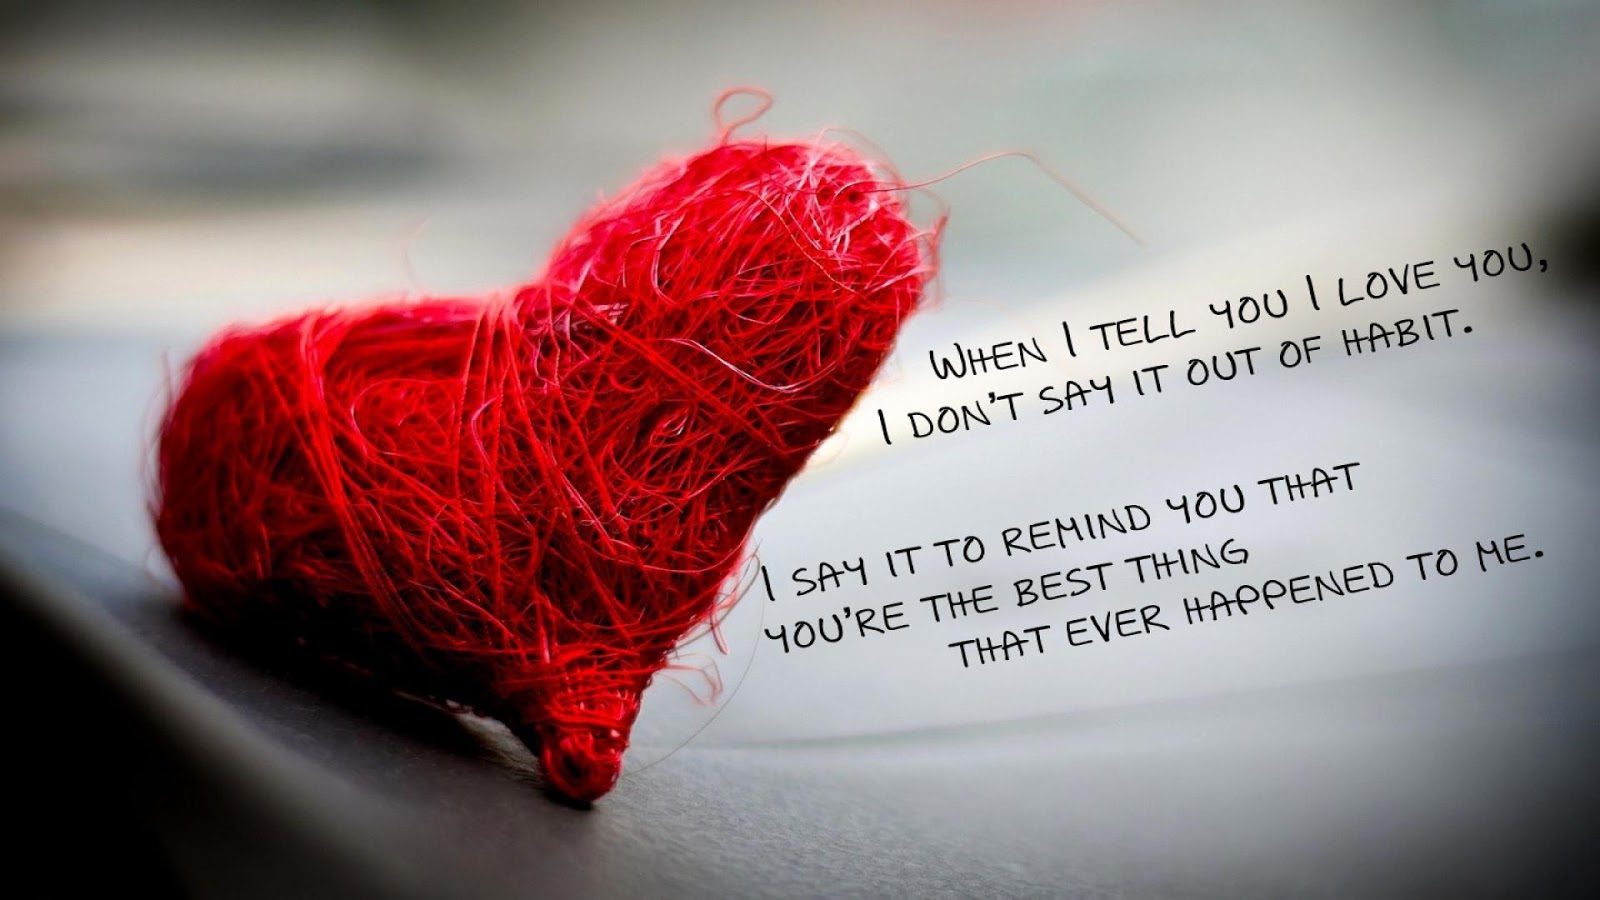 cute love quotes quotes wallpapers best love quotes wallpaper 1600x900